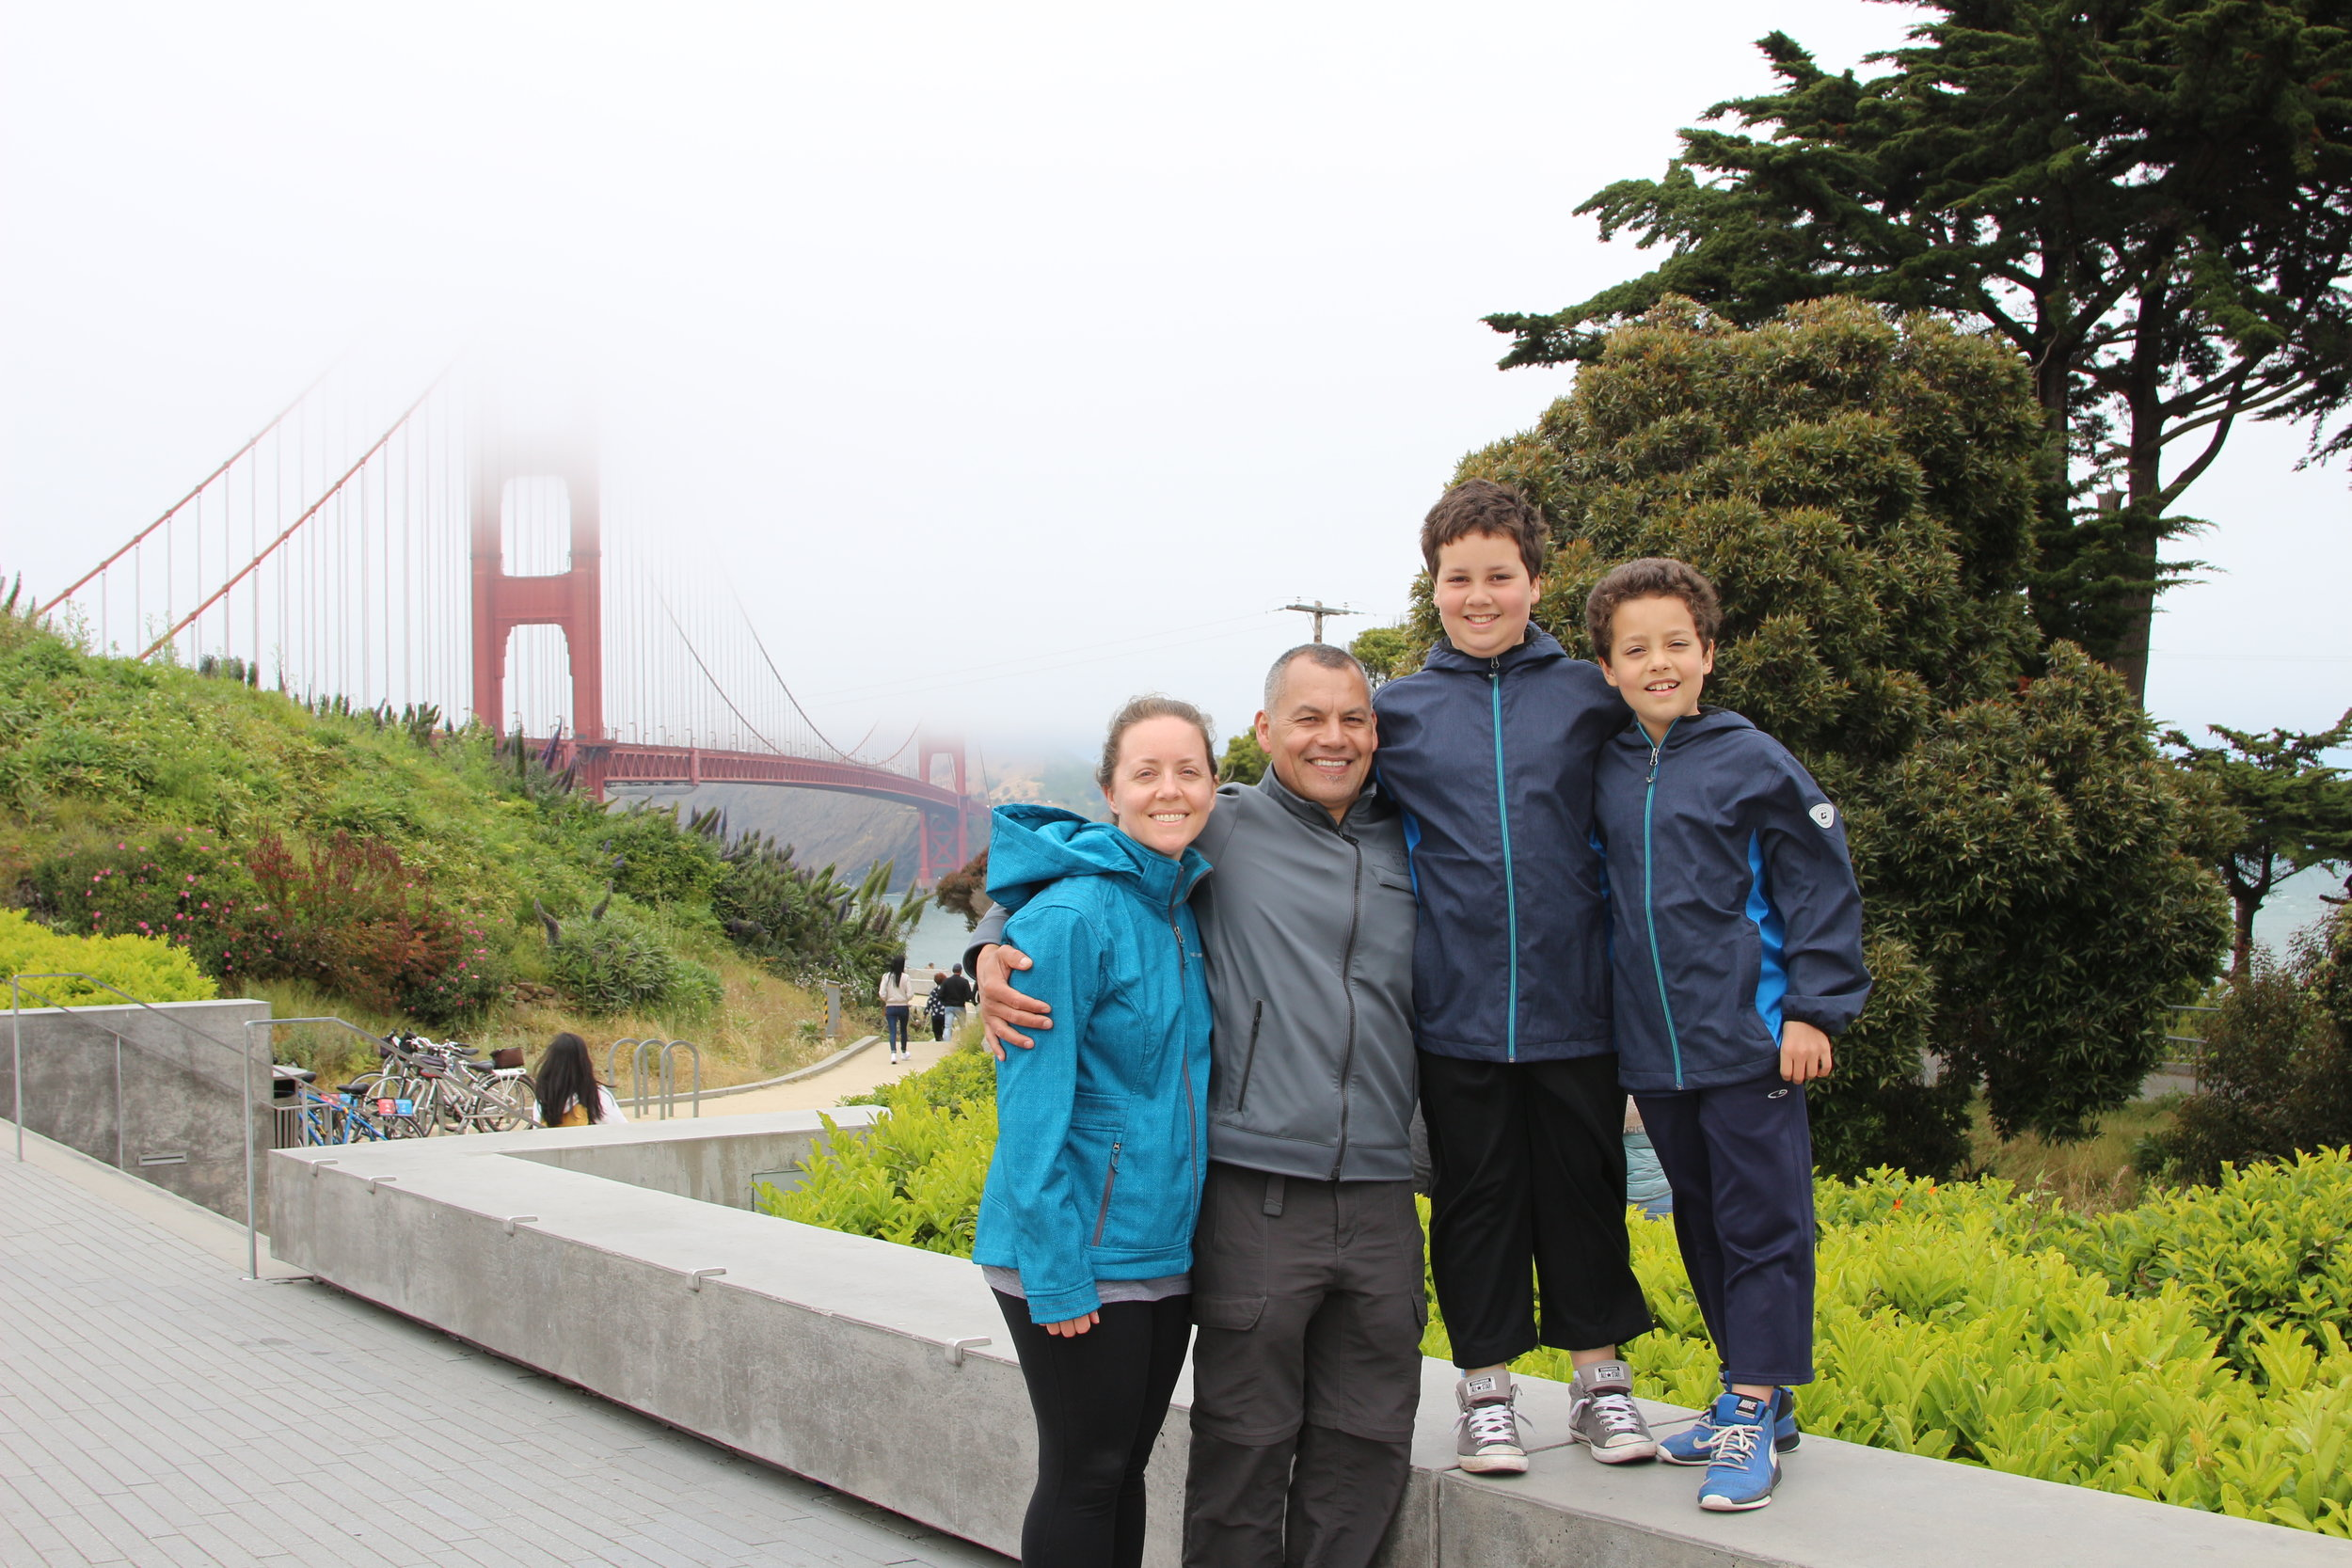 My family on our recent trip to San Francisco,CA